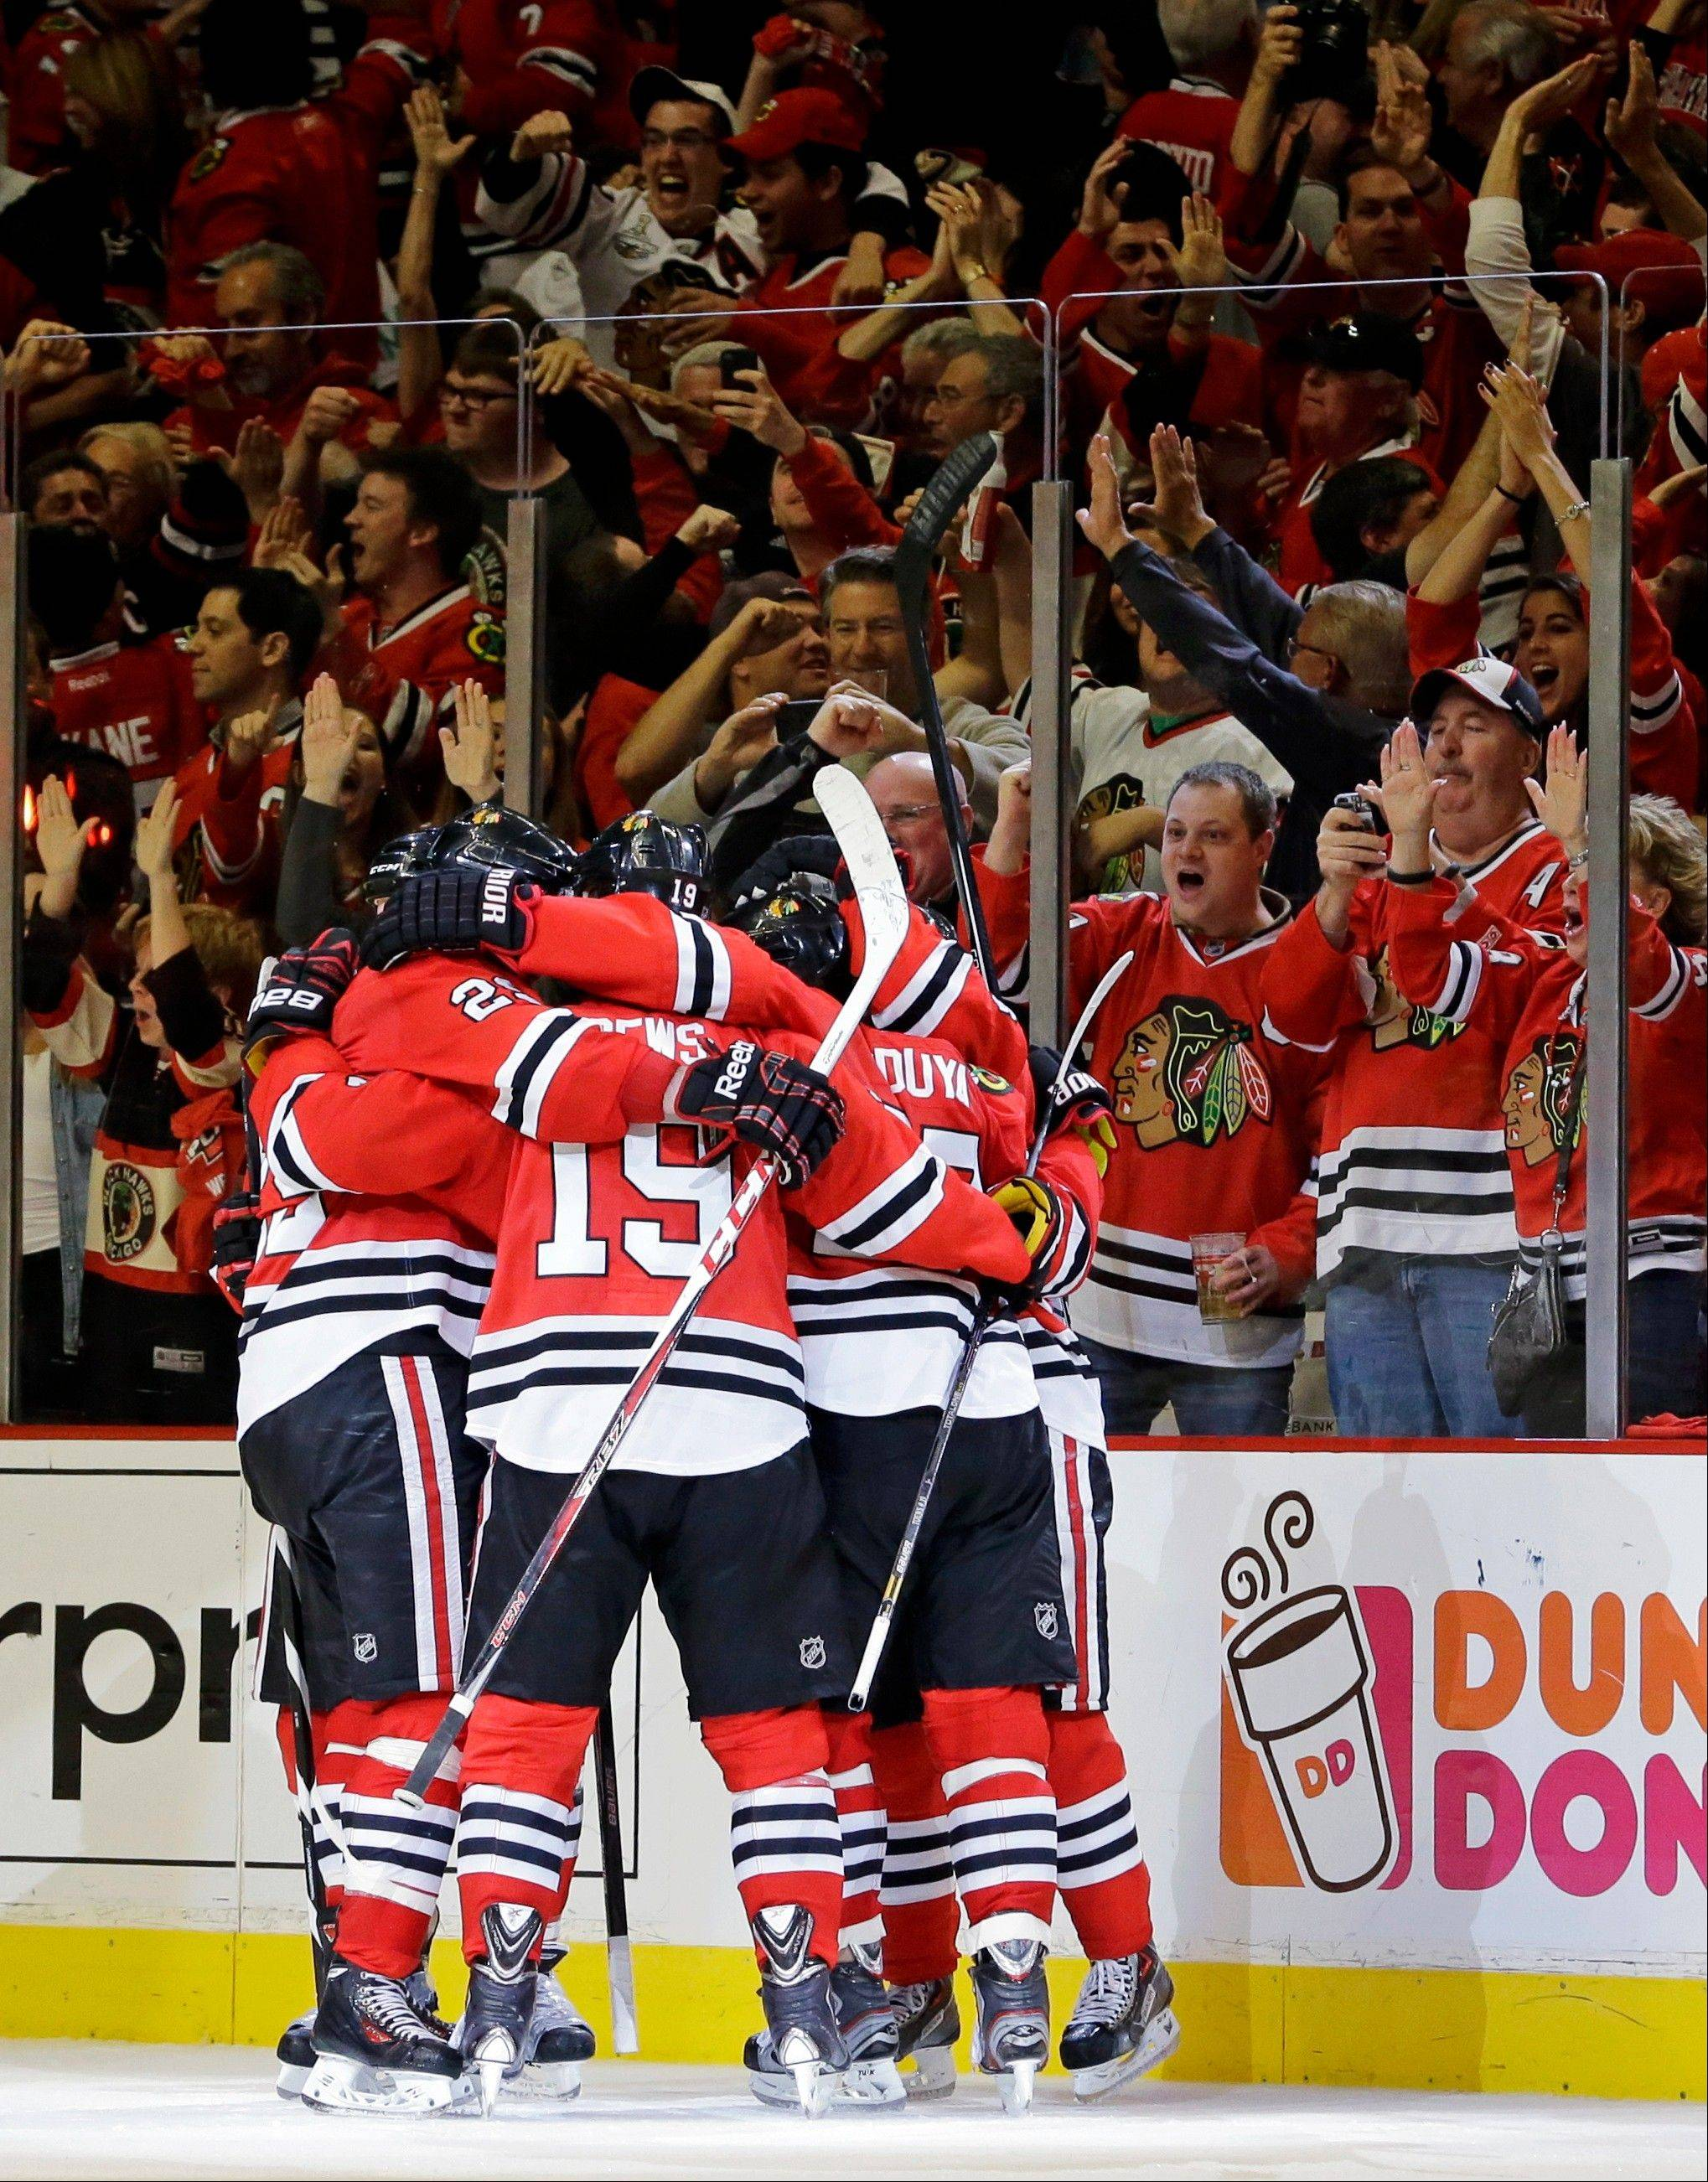 Chicago Blackhawks celebrate after right wing Patrick Kane scored a goal during the third period in Game 5 of the NHL hockey Stanley Cup playoffs Western Conference finals against the Los Angeles Kings, Saturday, June 8, 2013, in Chicago.